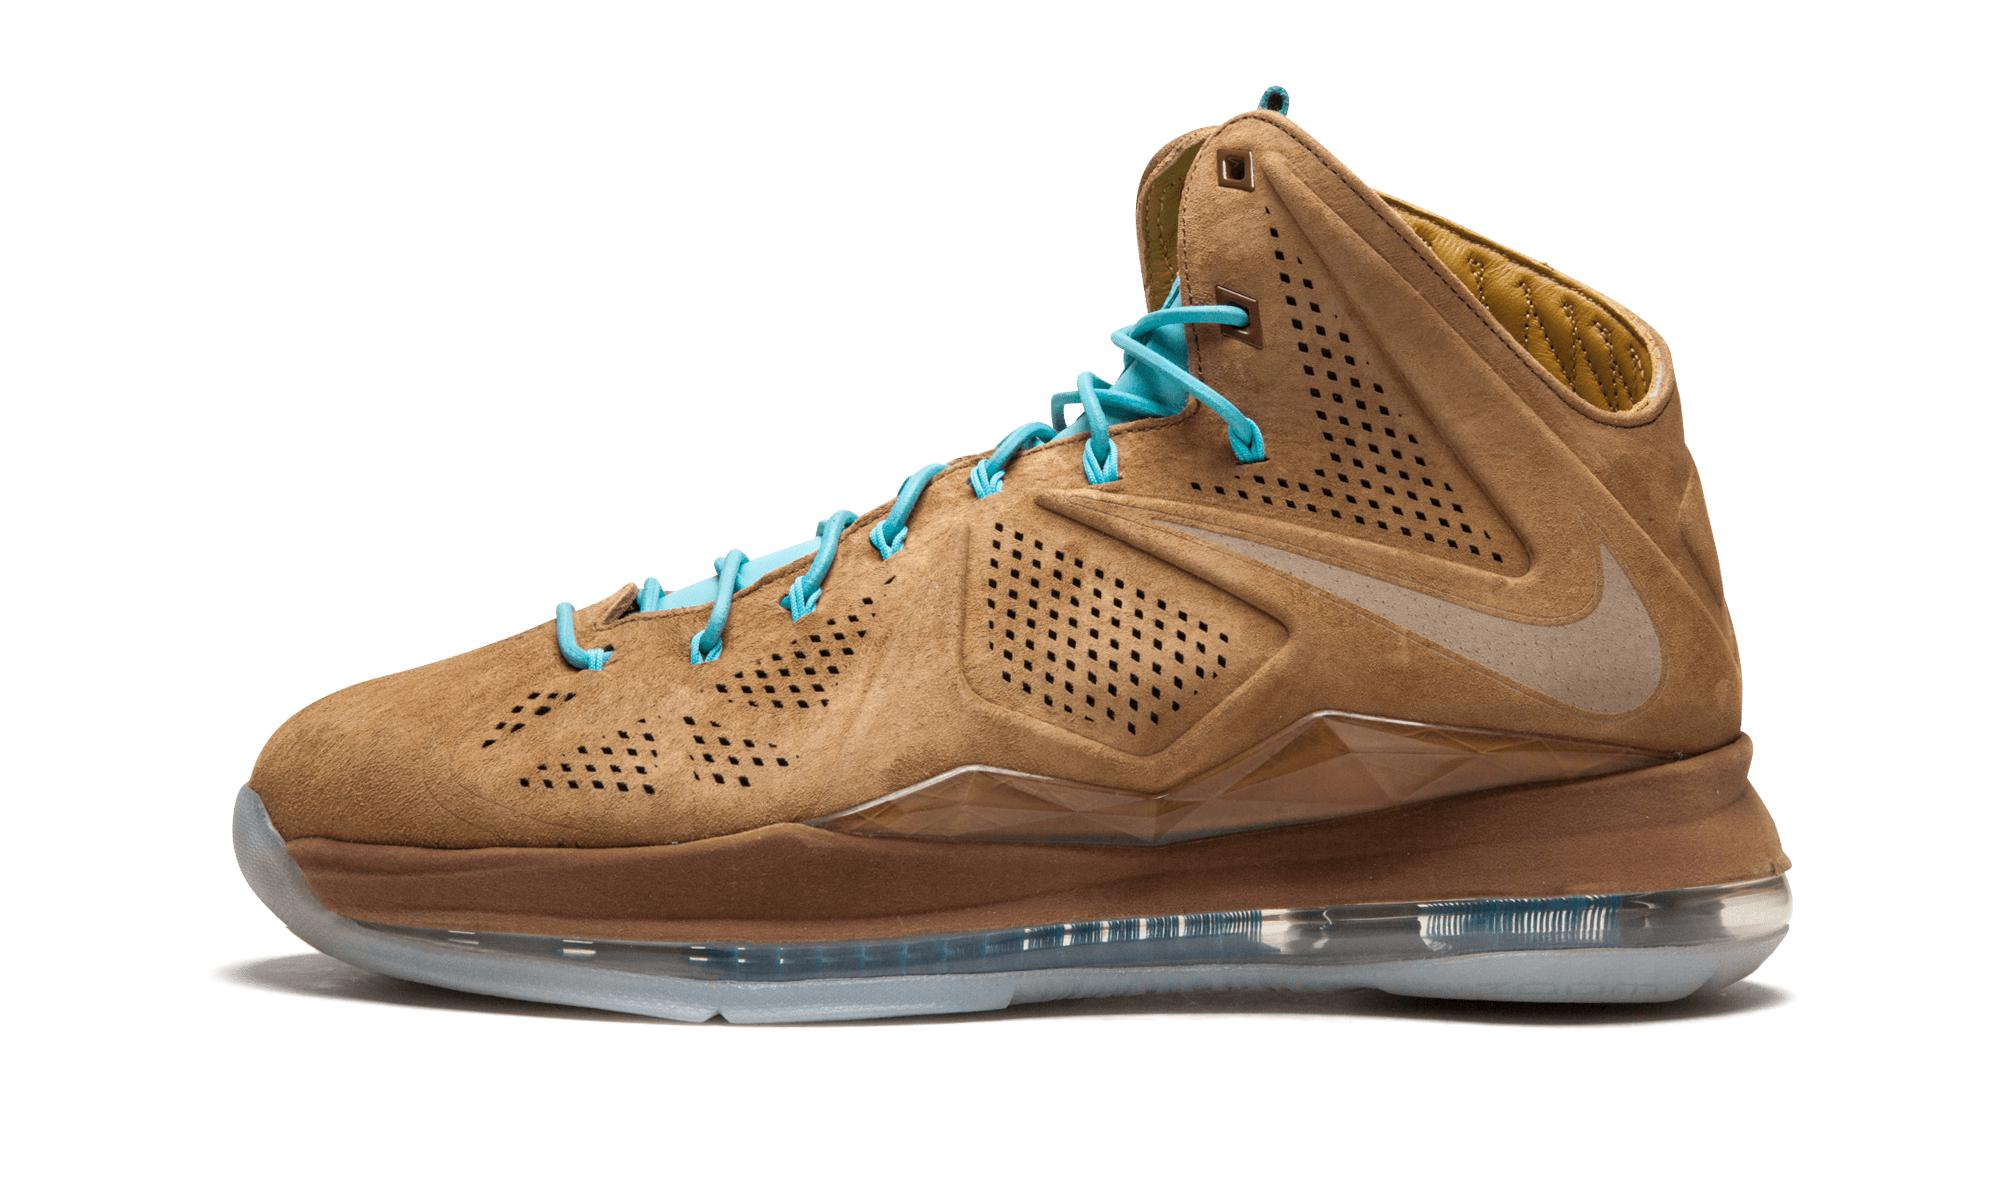 6c238065d24a Nike Lebron 10 Ext Qs for Men - Save 31% - Lyst